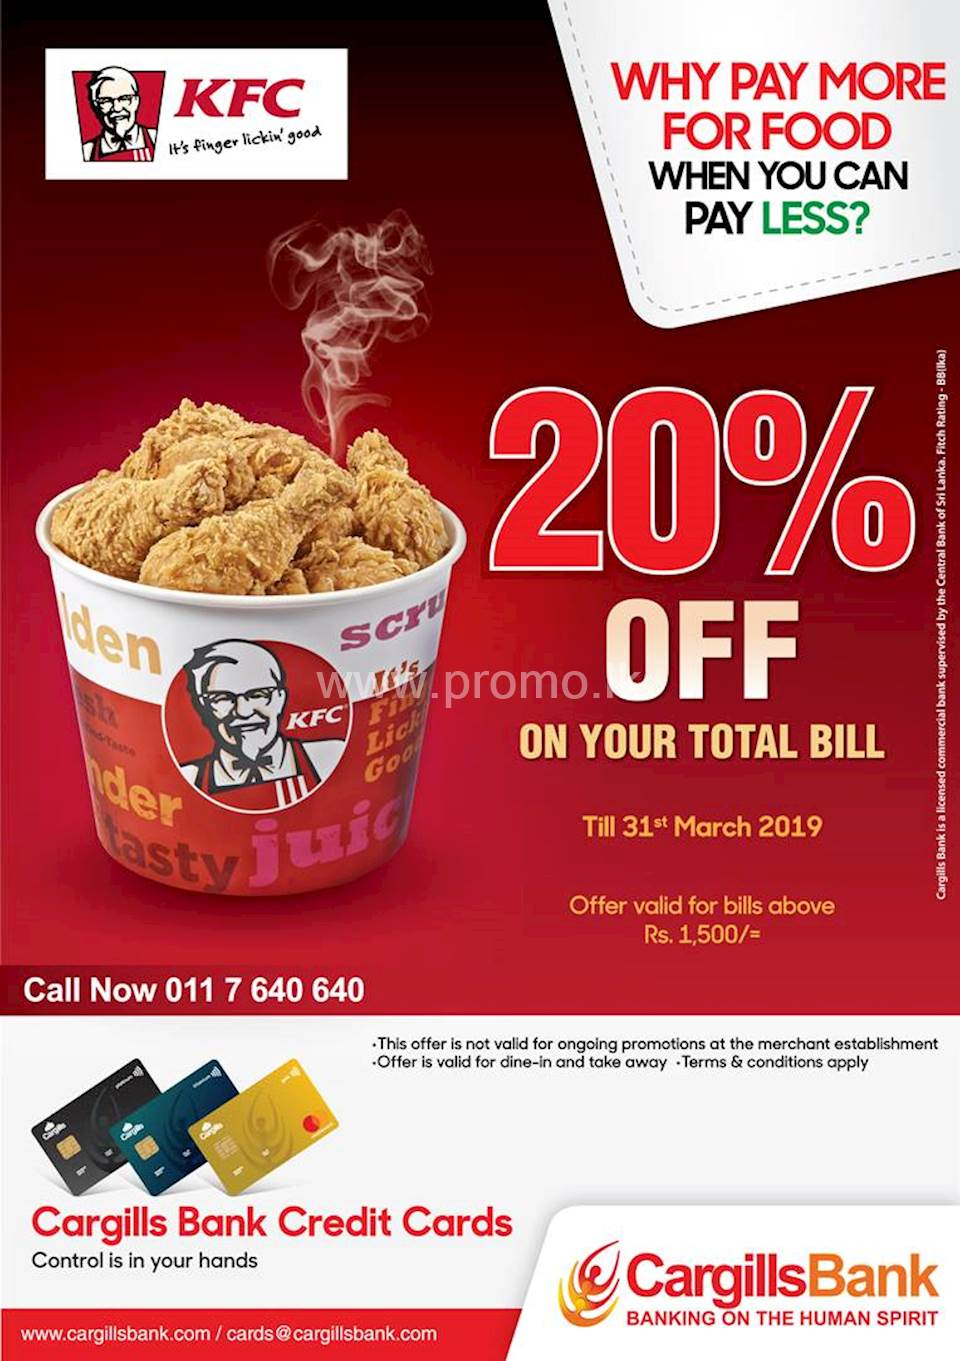 Enjoy 20% off your total bill when you purchase using your Cargills Bank Credit Card at KFC